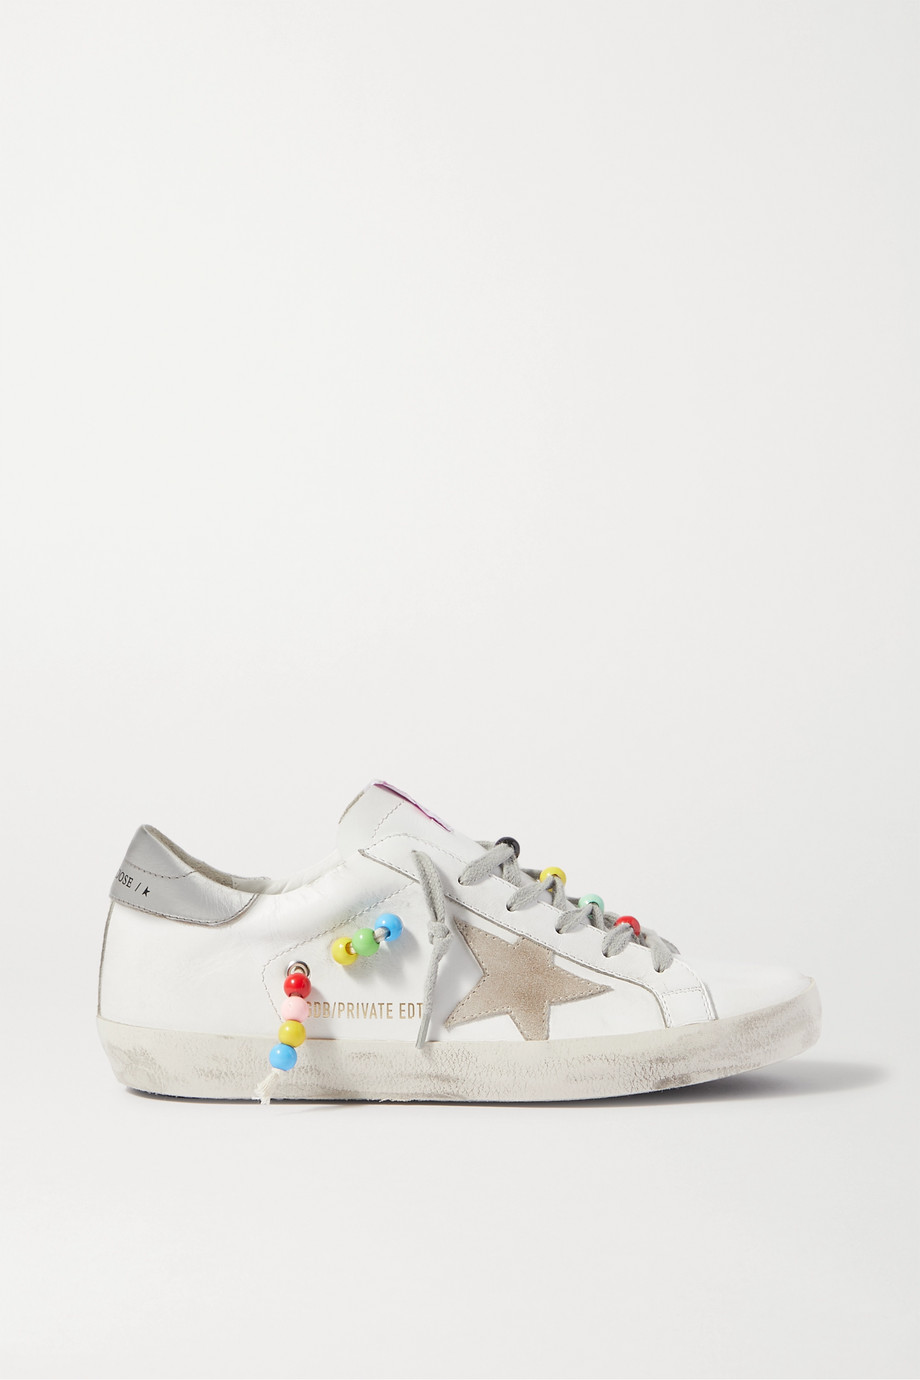 GOLDEN GOOSE Superstar bead-embellished distressed leather and suede sneakers